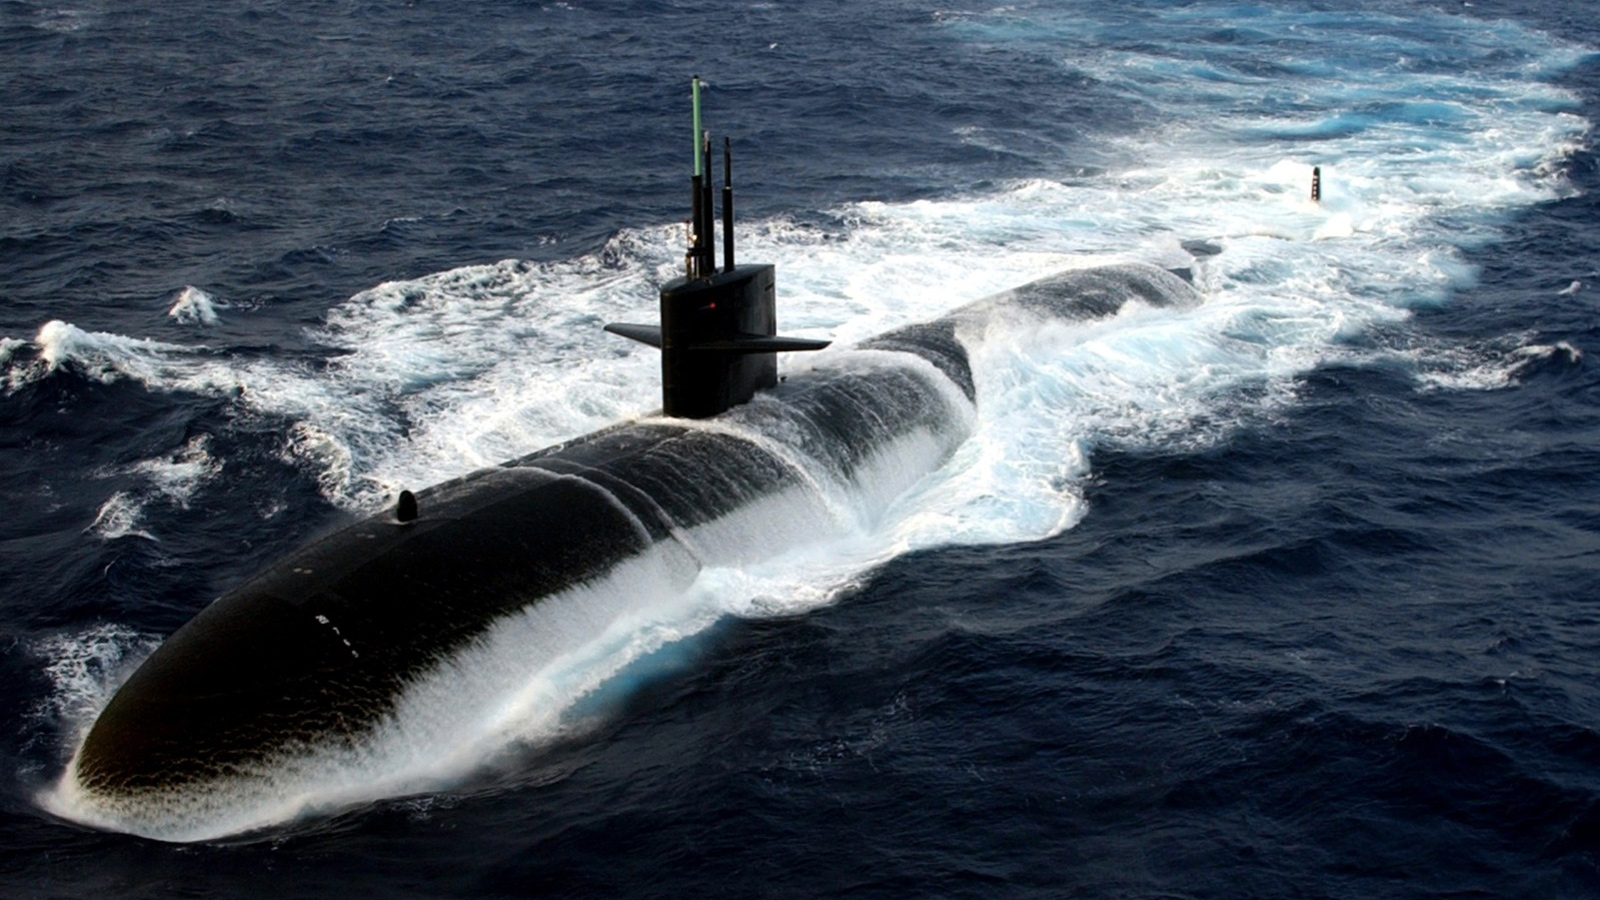 submarine 1600x900 16 9 back to wallpaper back home 1600x900